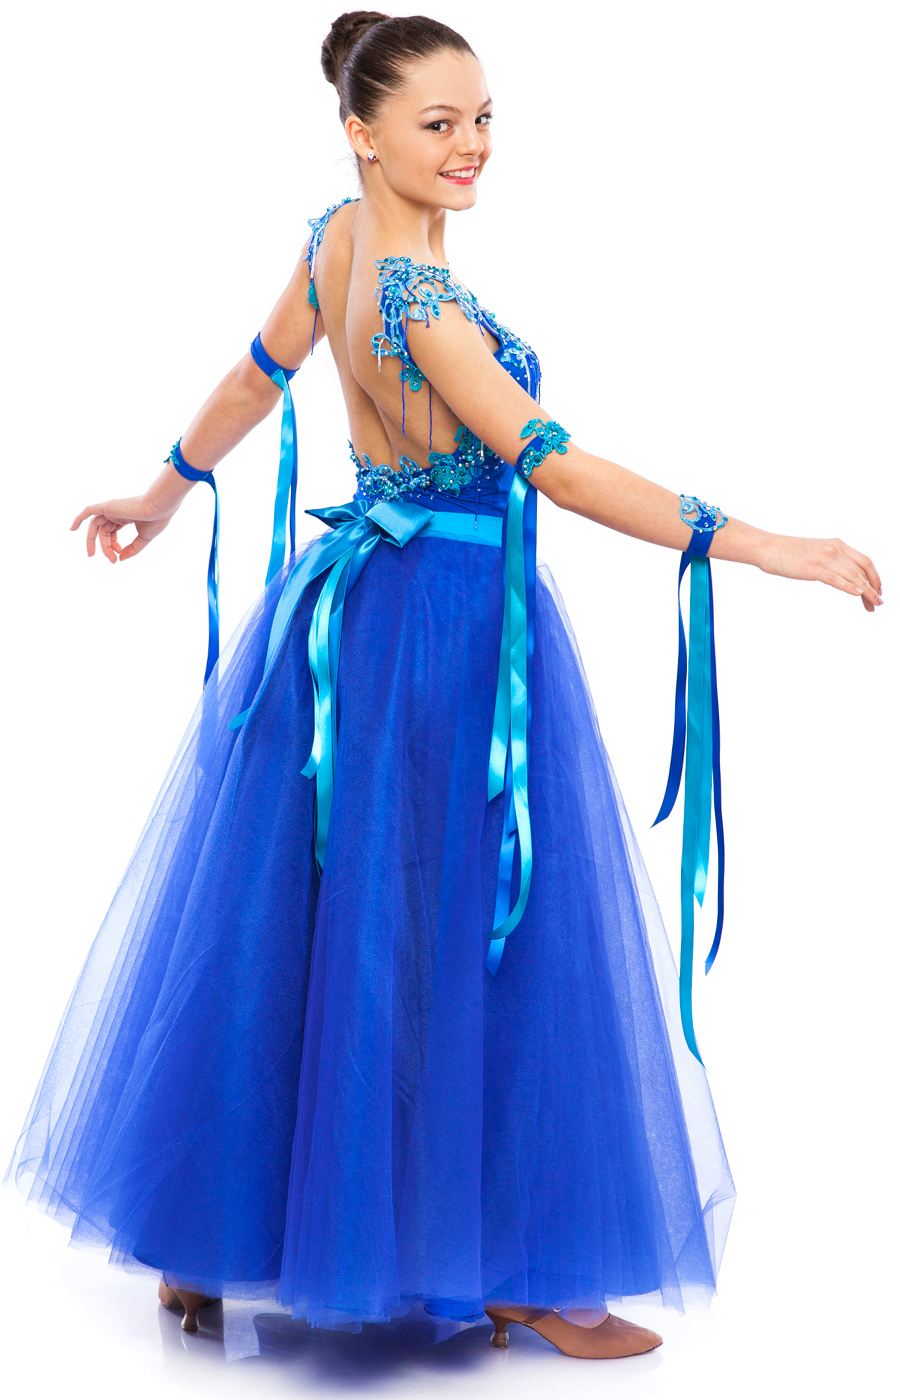 Teen Girl Blue Ballroom Dress Lusiana